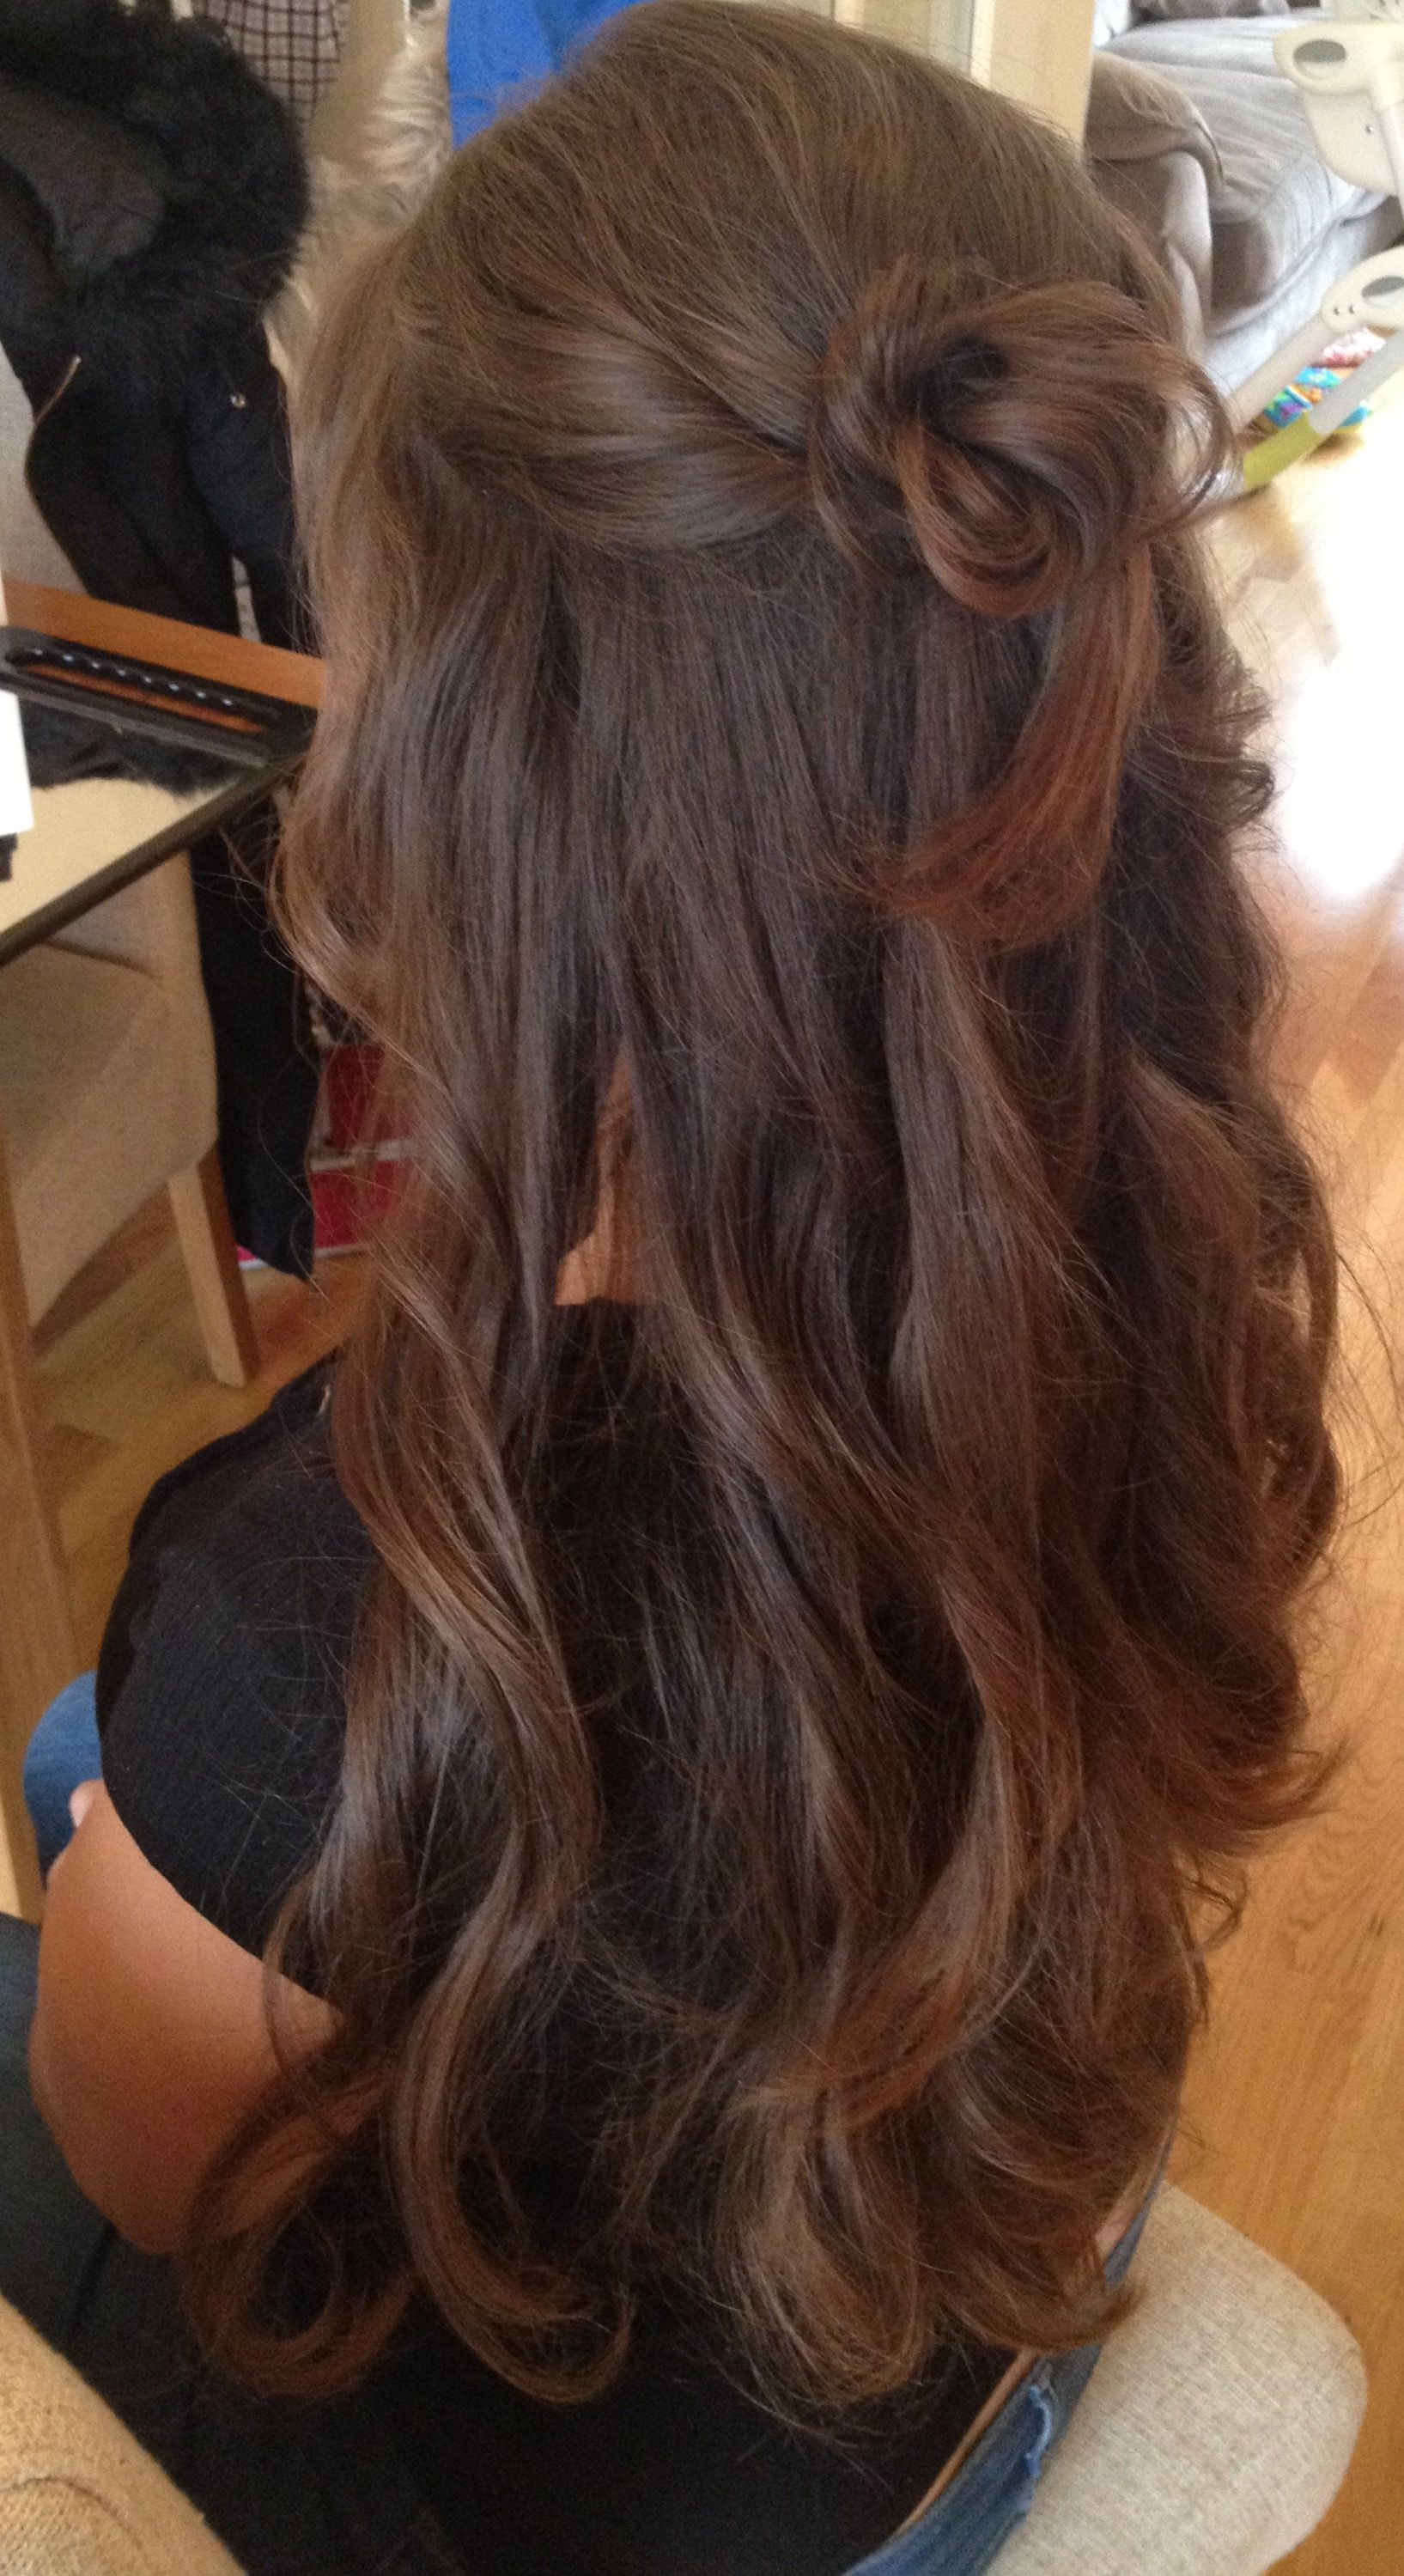 Loose curls with half up twists and messy bun Created by Kirsty at